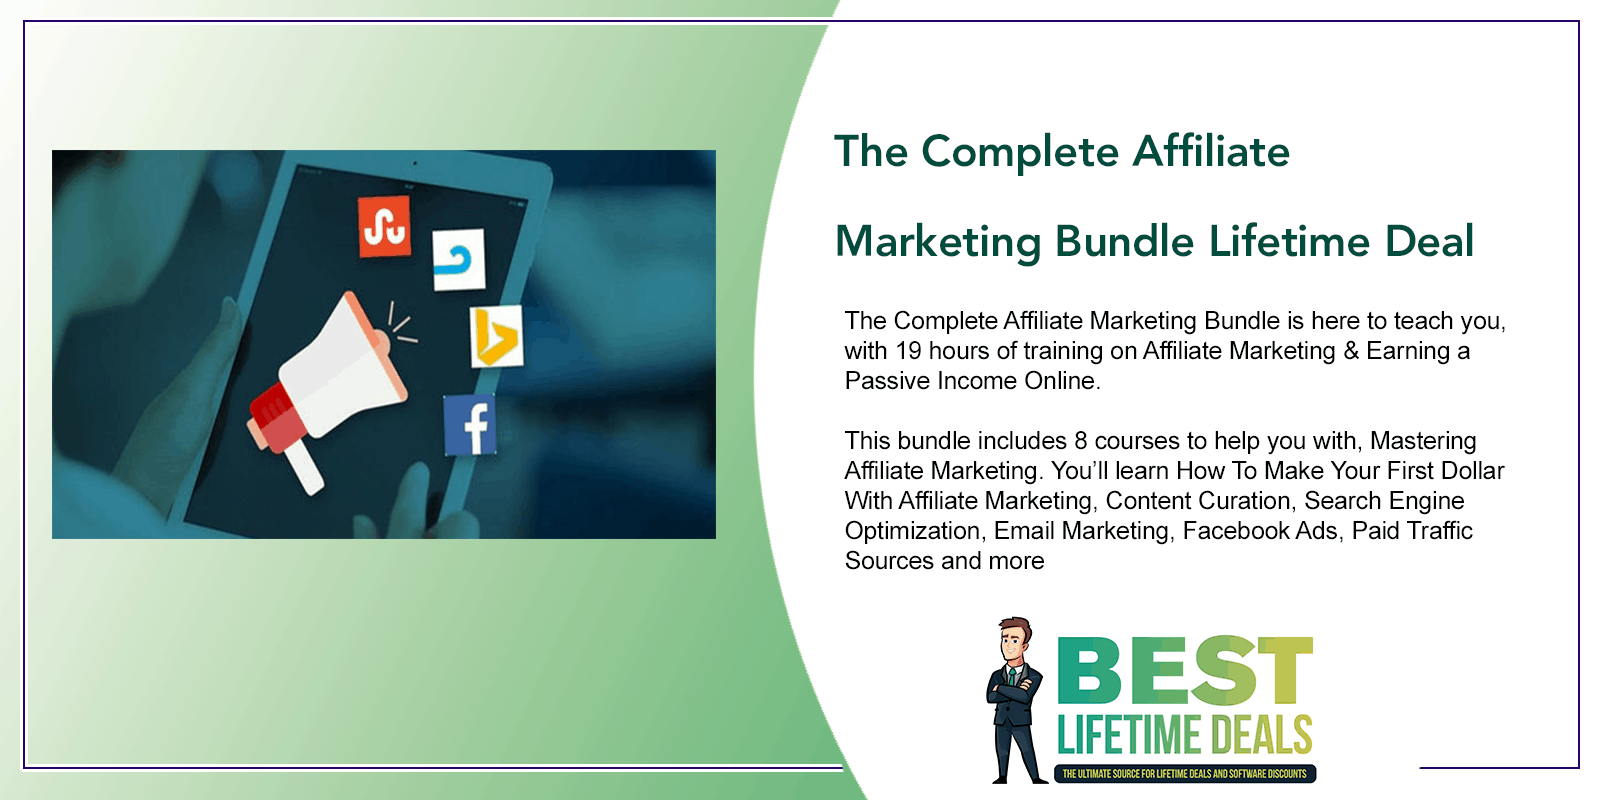 The Complete Affiliate Marketing Bundle Lifetime Deal Featured Image